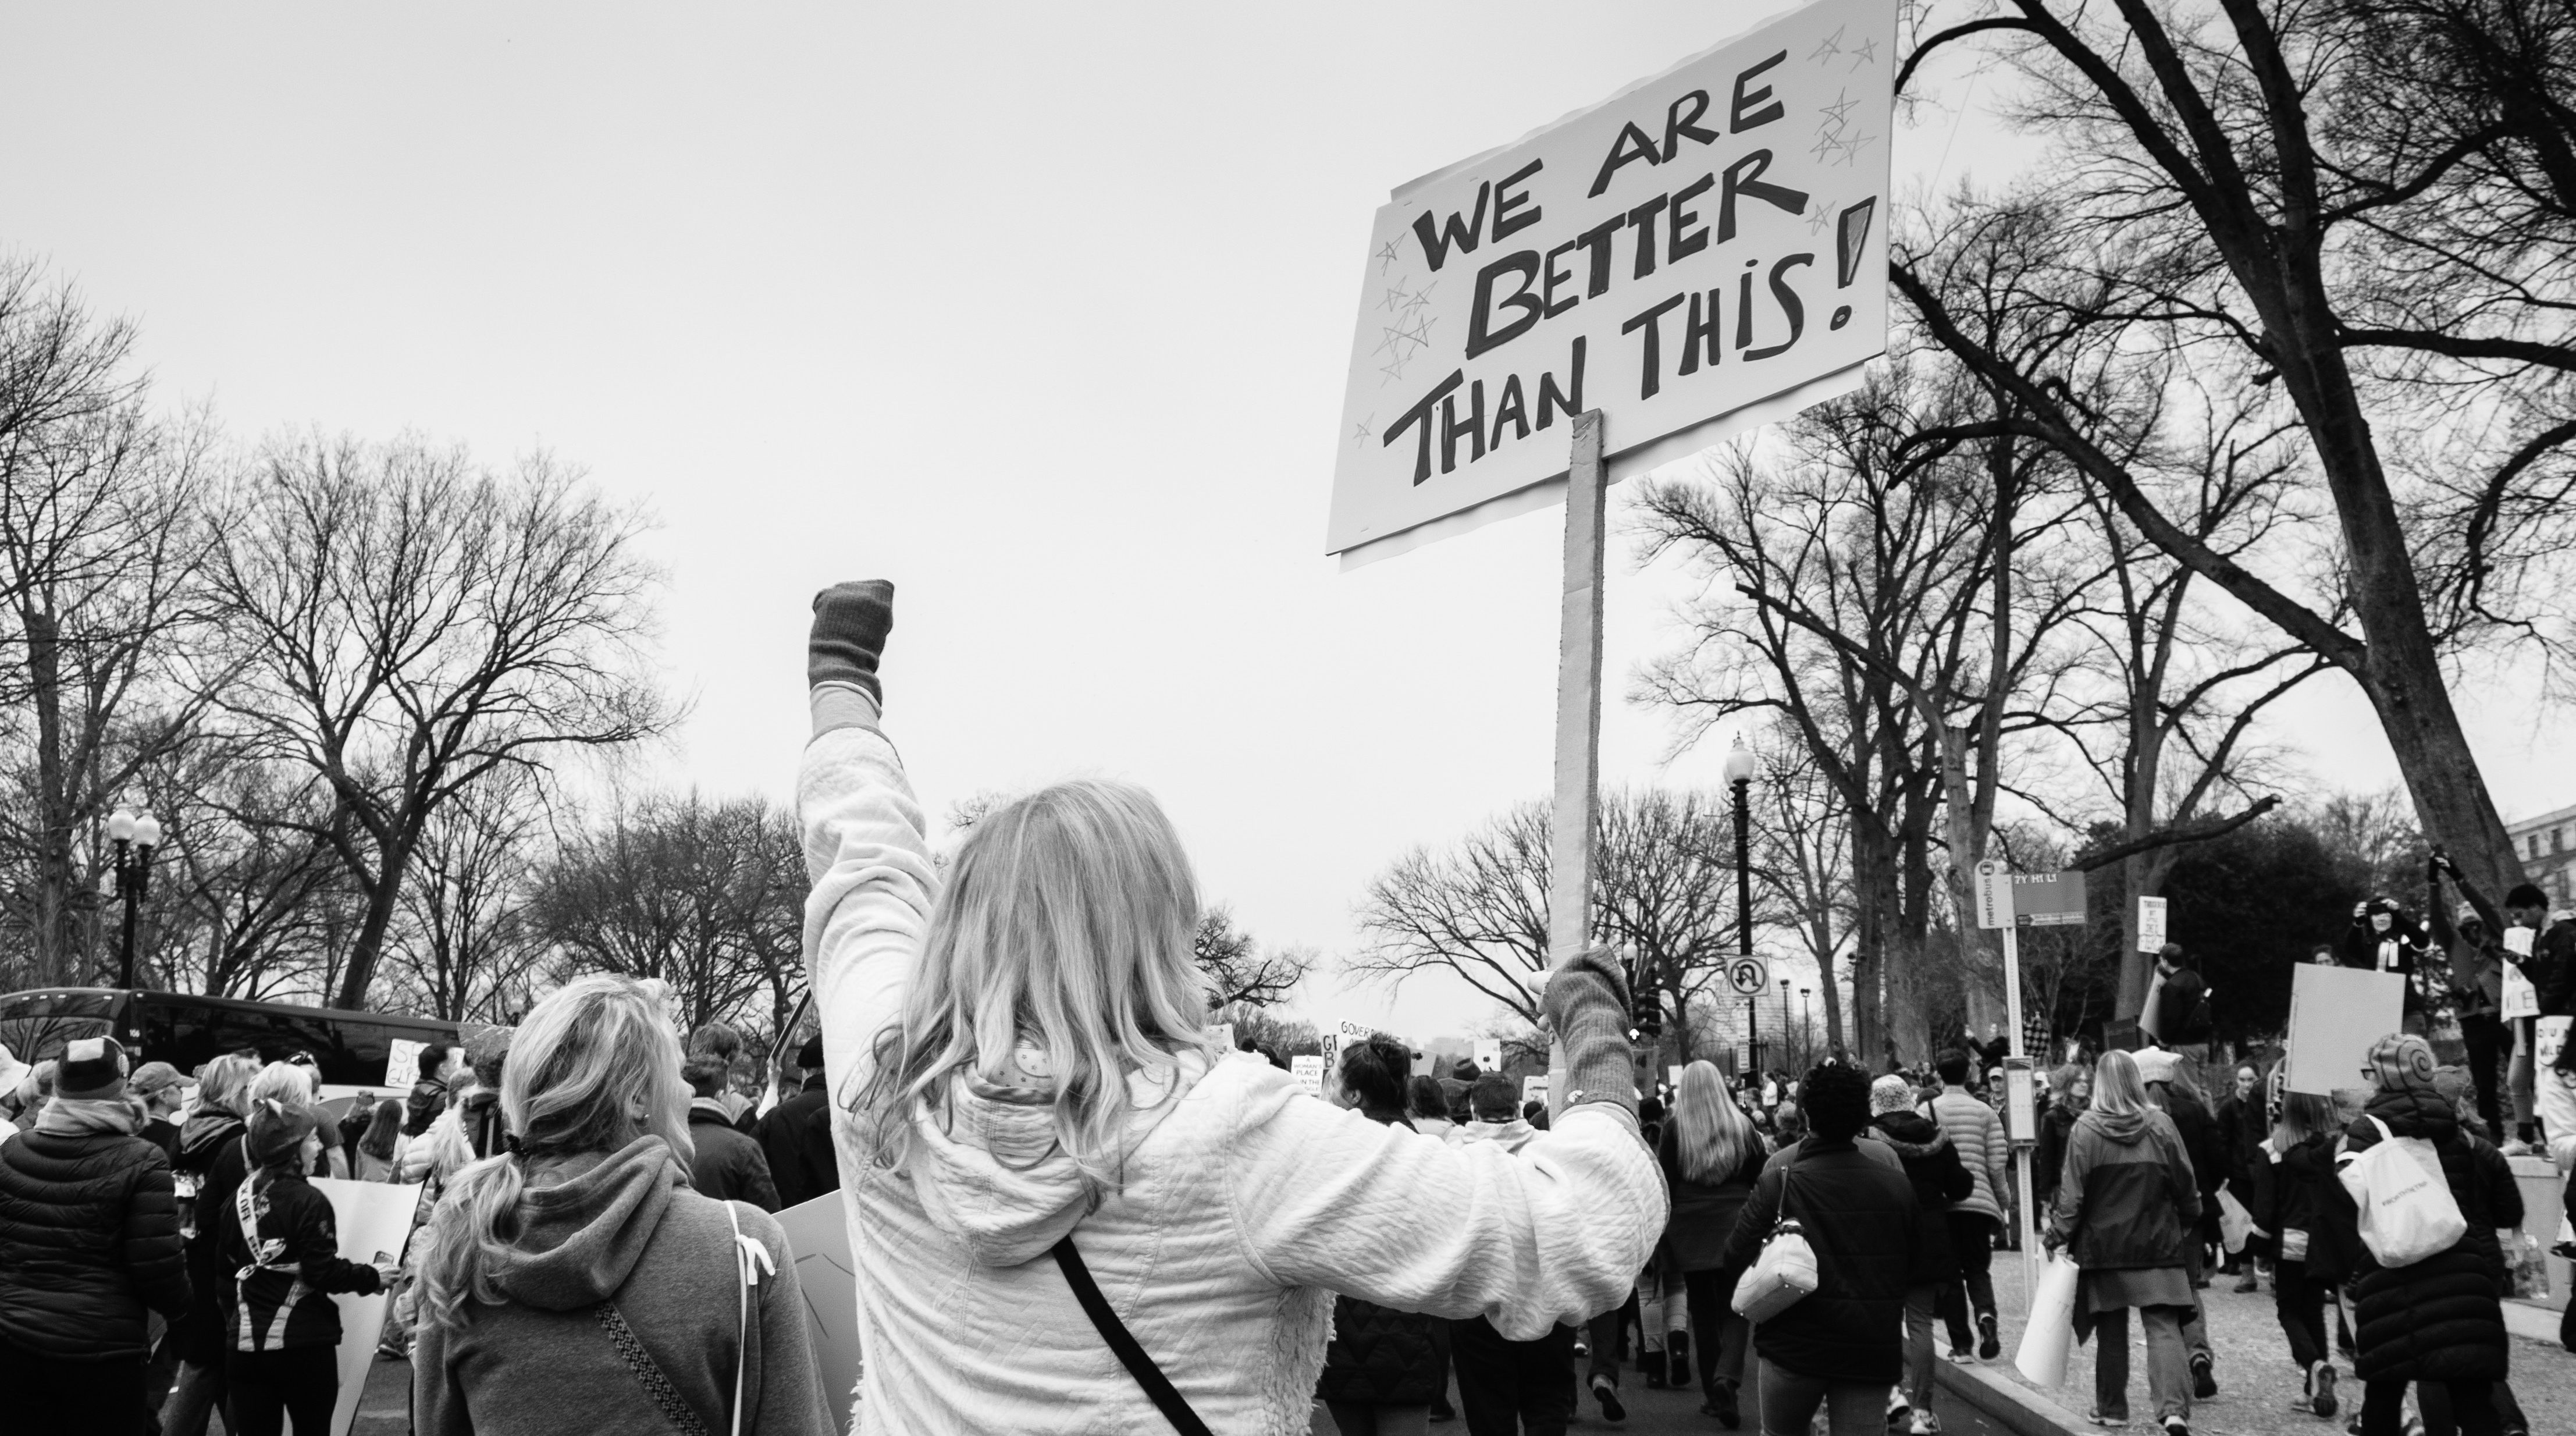 """A woman marches in the women's march holding a sign that says """"We are better than this."""""""